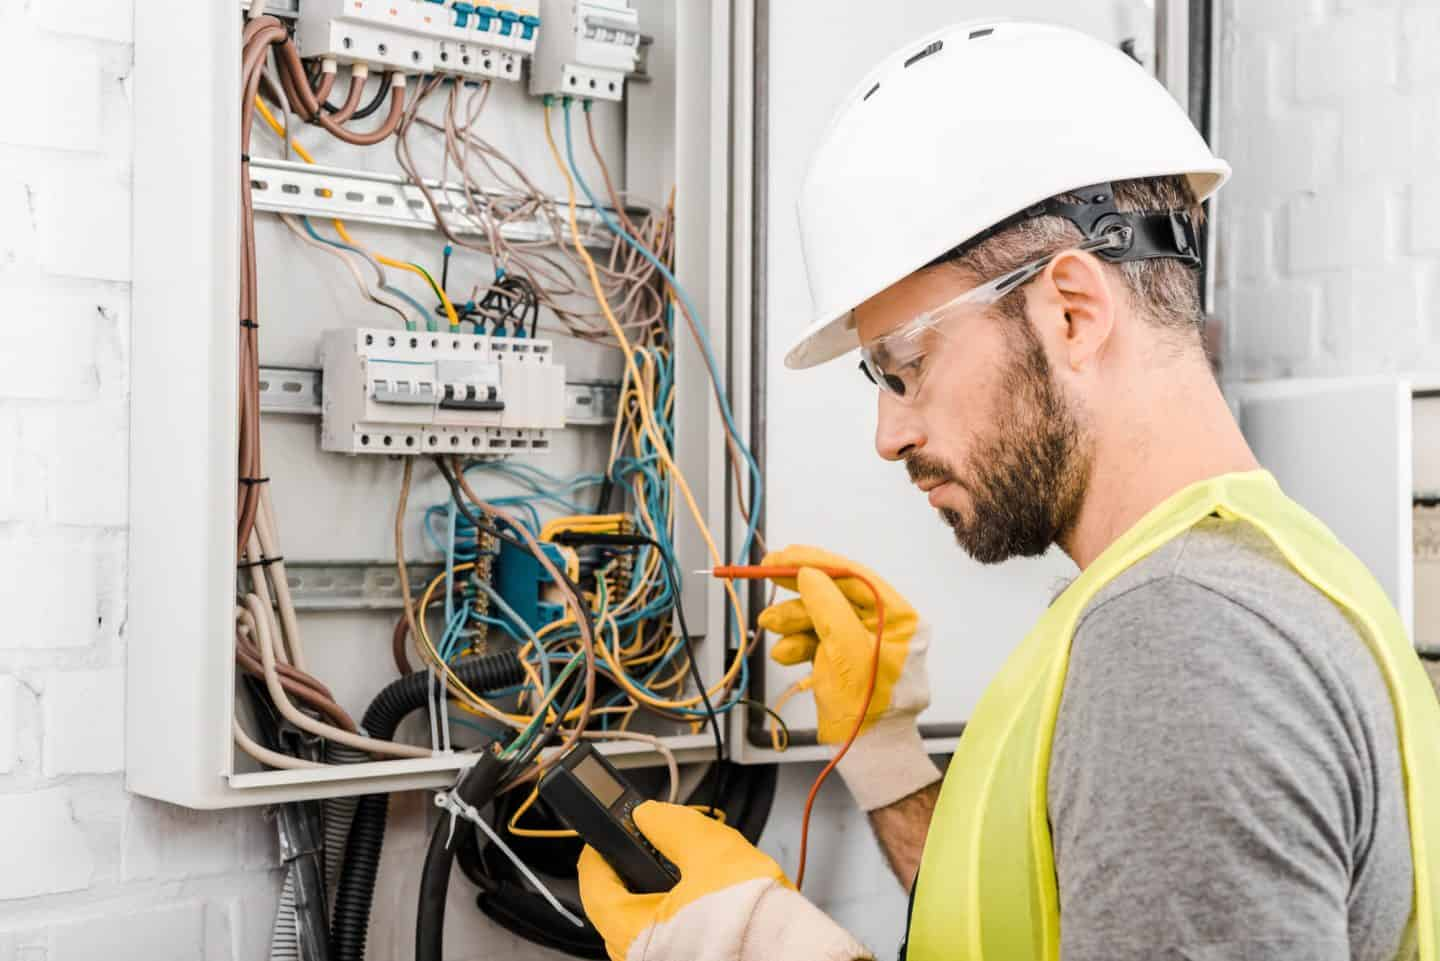 Inherent Danger: 4 Potentially Serious Injuries That Can Result from Electricity